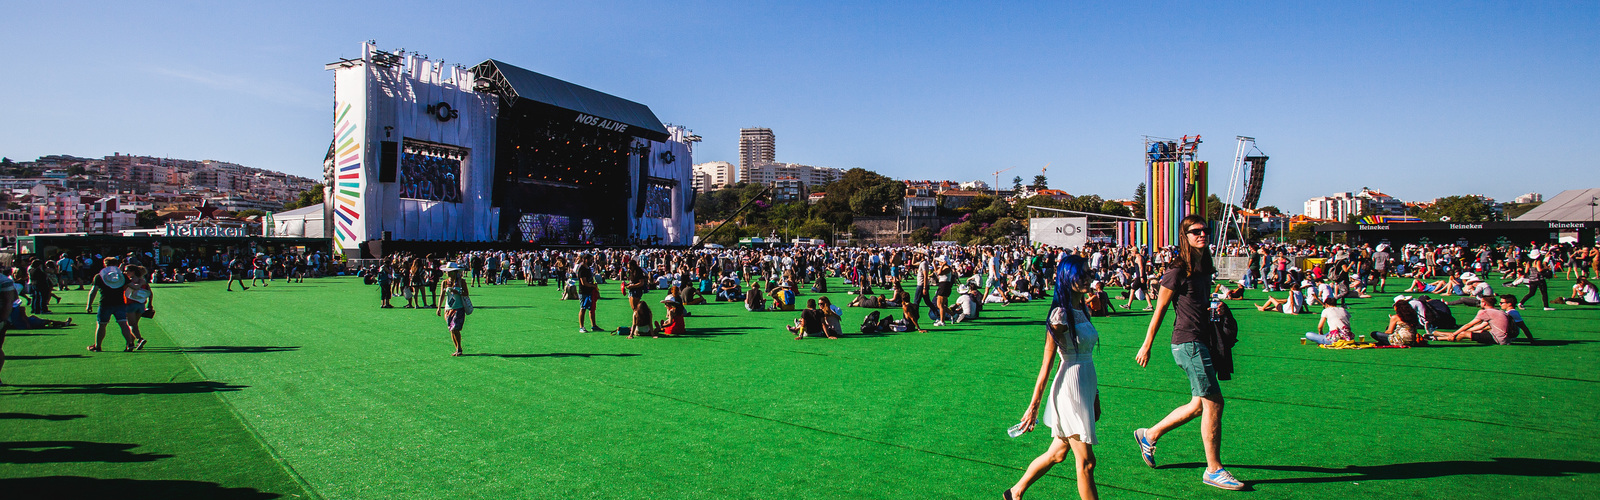 NOS Alive 2nd day: 5 concerts you don't wanna miss